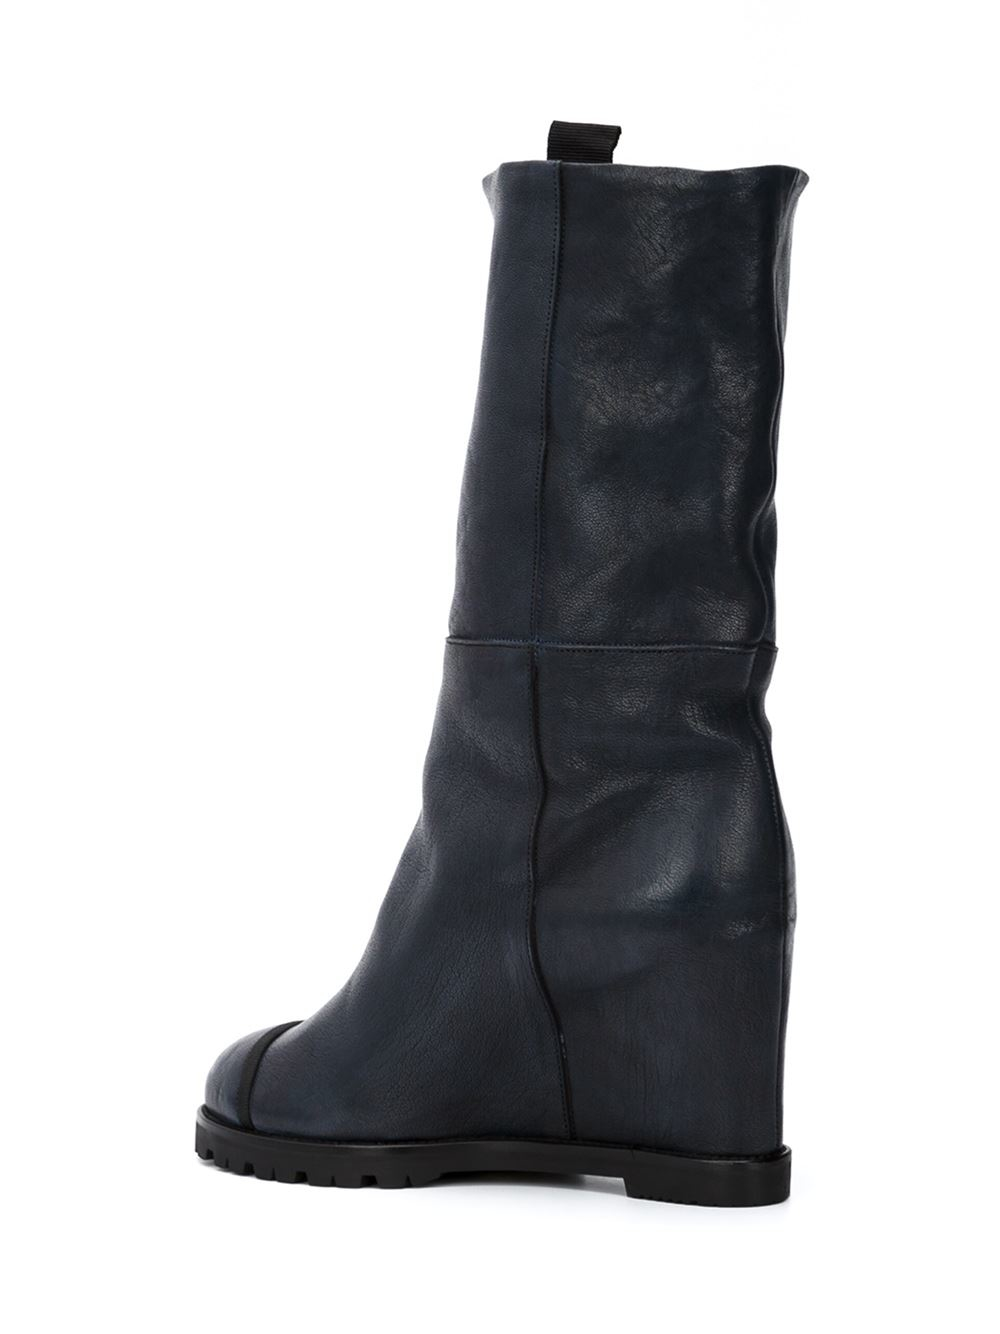 chuckies new york mid calf wedge boots in black lyst